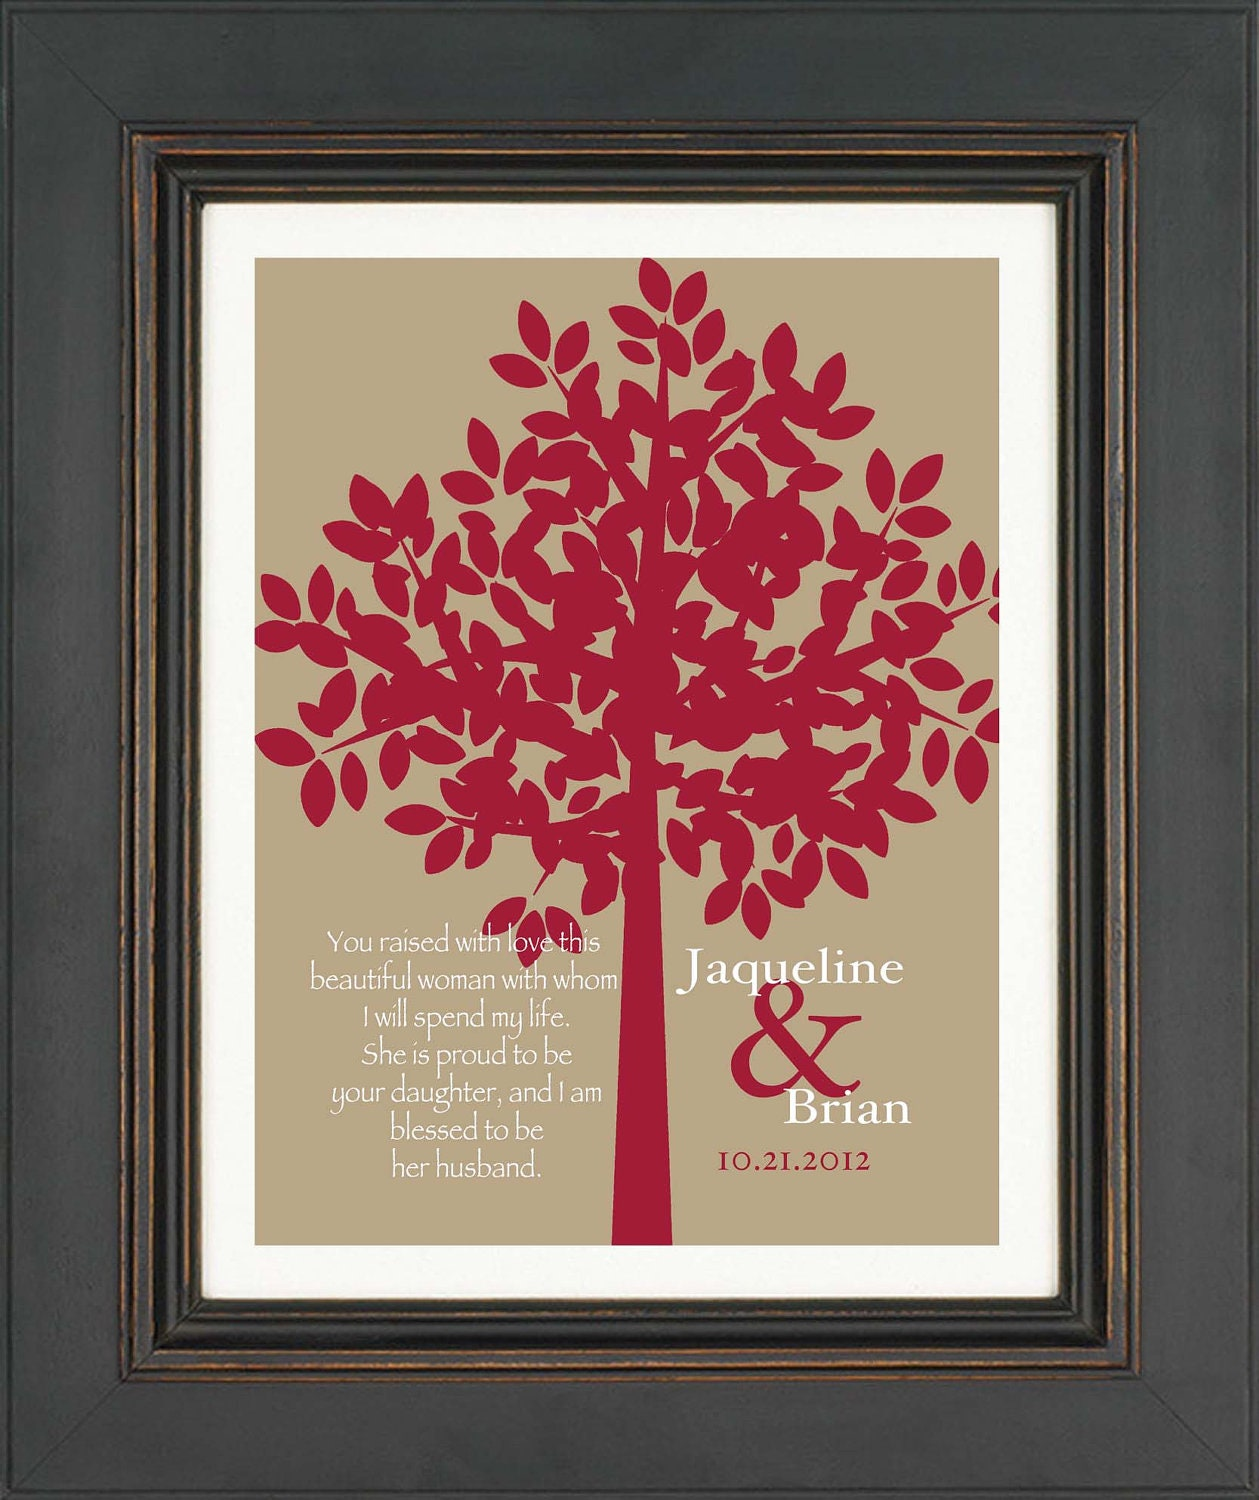 Wedding Gift From Parents To Son : Wedding Gift for Parents from Son-in-Law by KreationsbyMarilyn